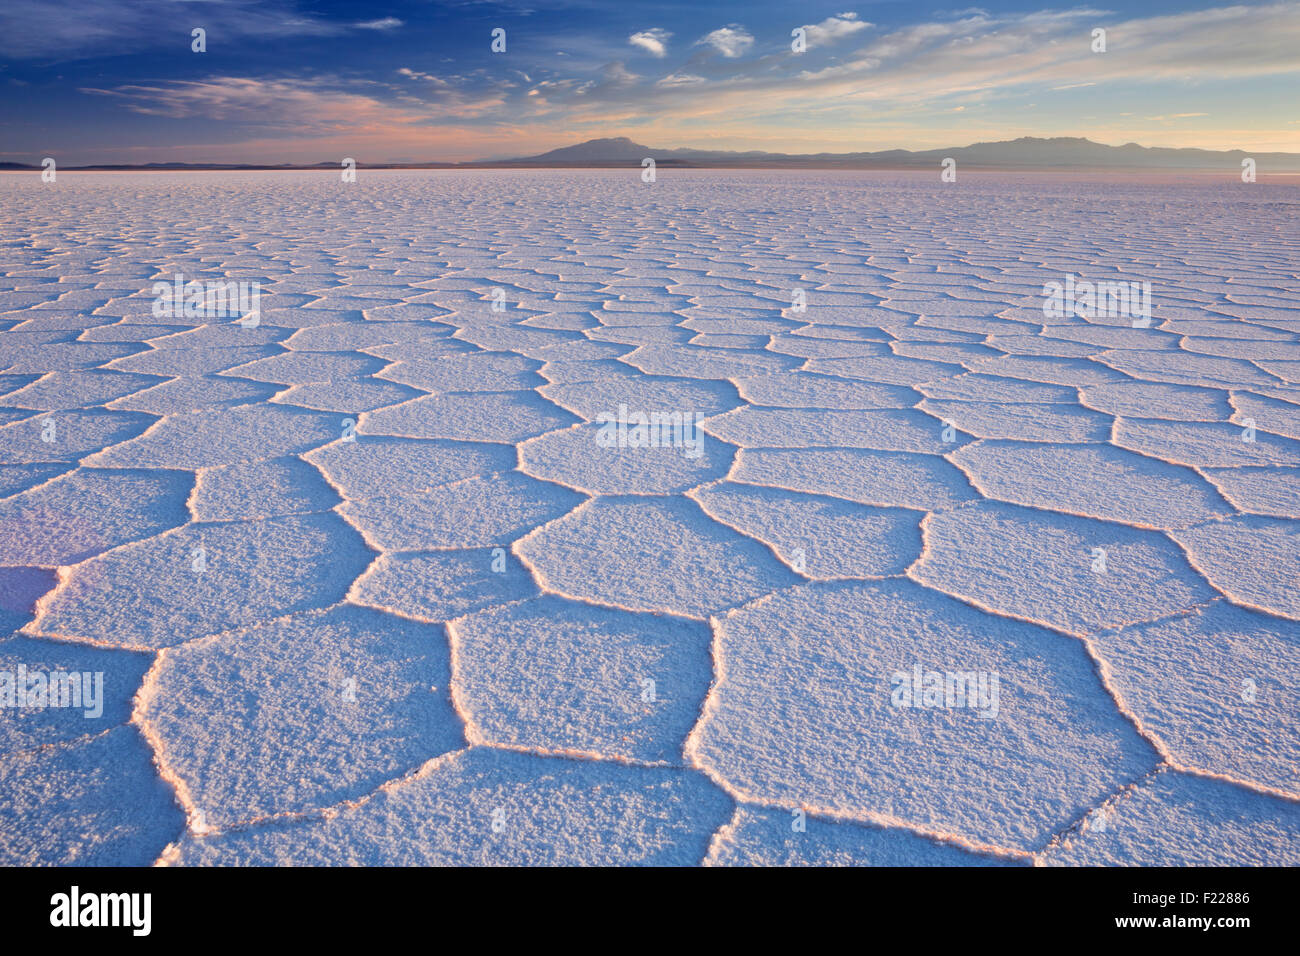 Le plus grand de sel, Salar de Uyuni en Bolivie, photographié au lever du soleil. Photo Stock